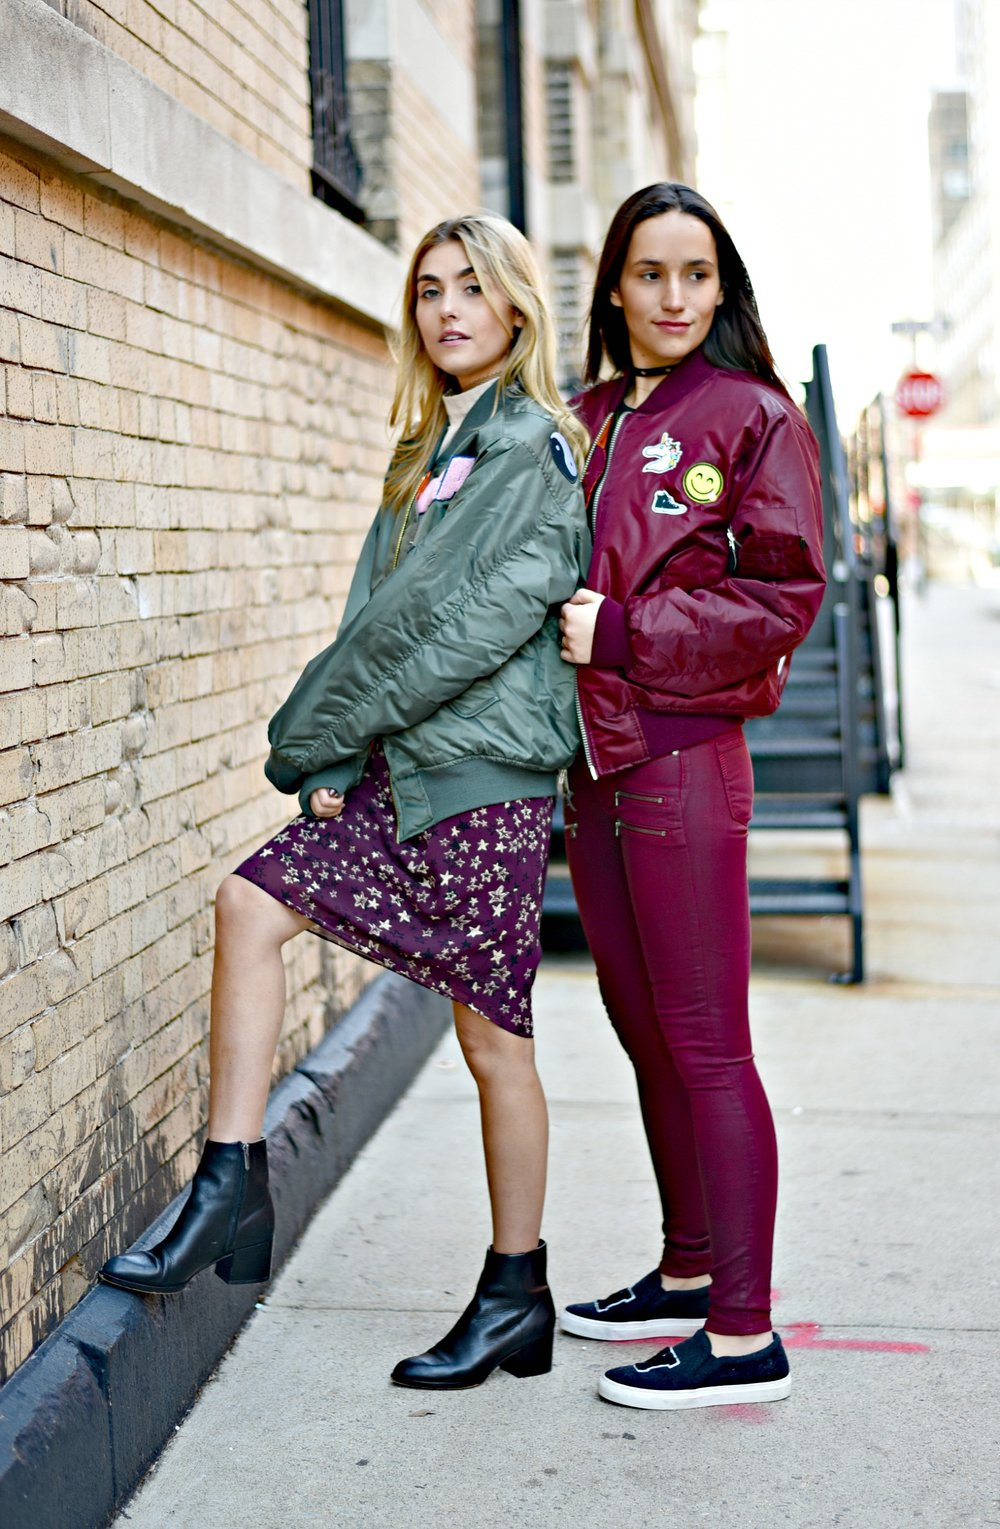 SOPHIE & CHARLOTTE BICKLEY YIN 2MY YANG SISTER FASHION BLOGGERS NYC UNEMPLOYED DENIM POST 1f.jpg